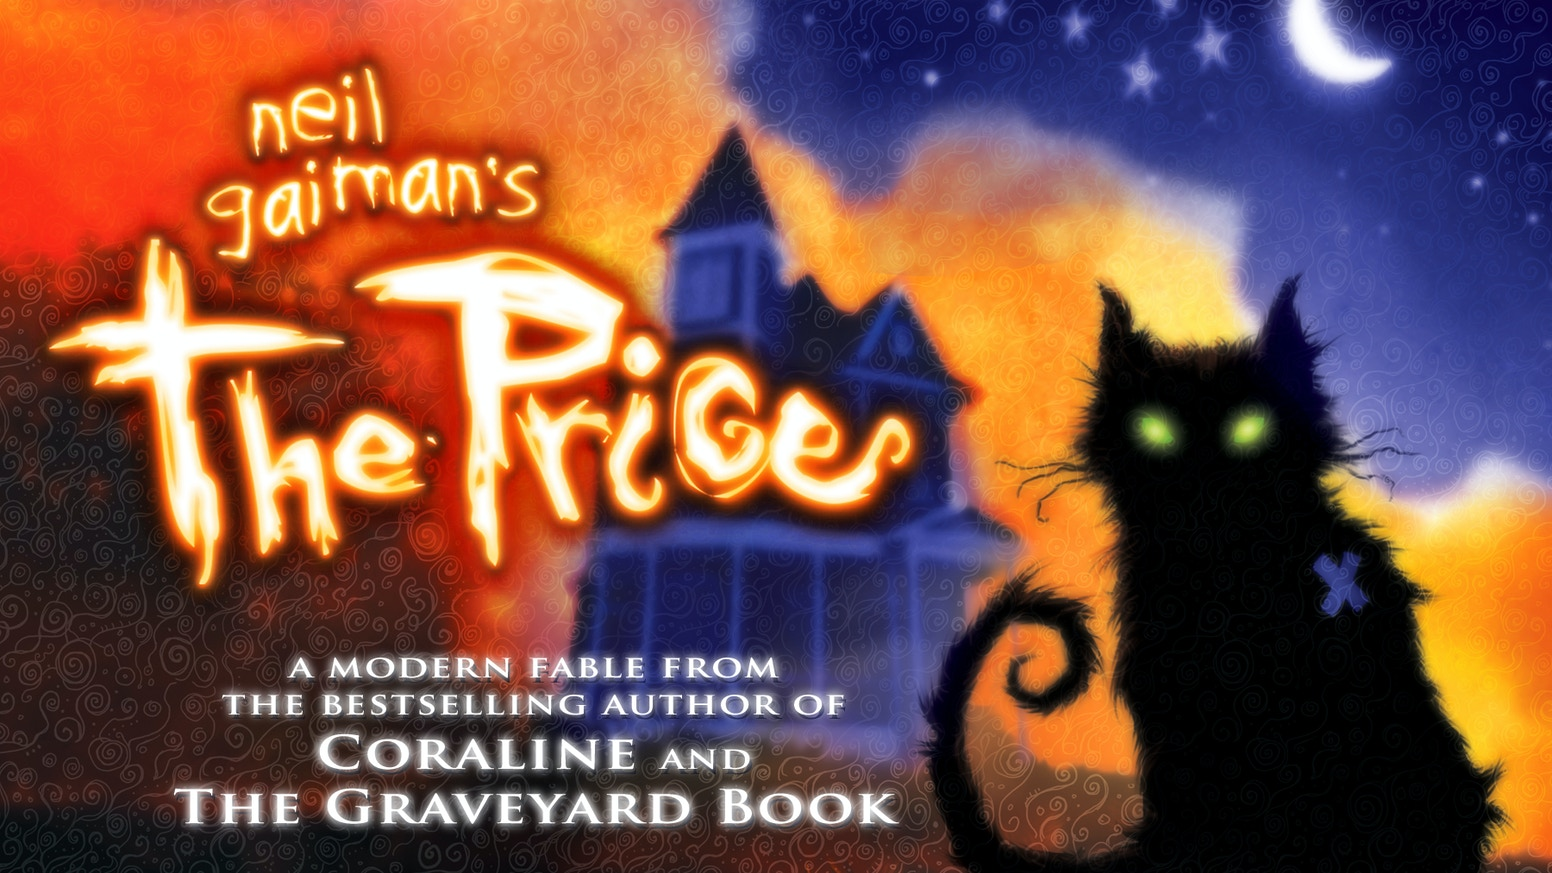 """A uniquely stylized CG animated film based on the short story """"The Price"""" by award-winning author Neil Gaiman."""